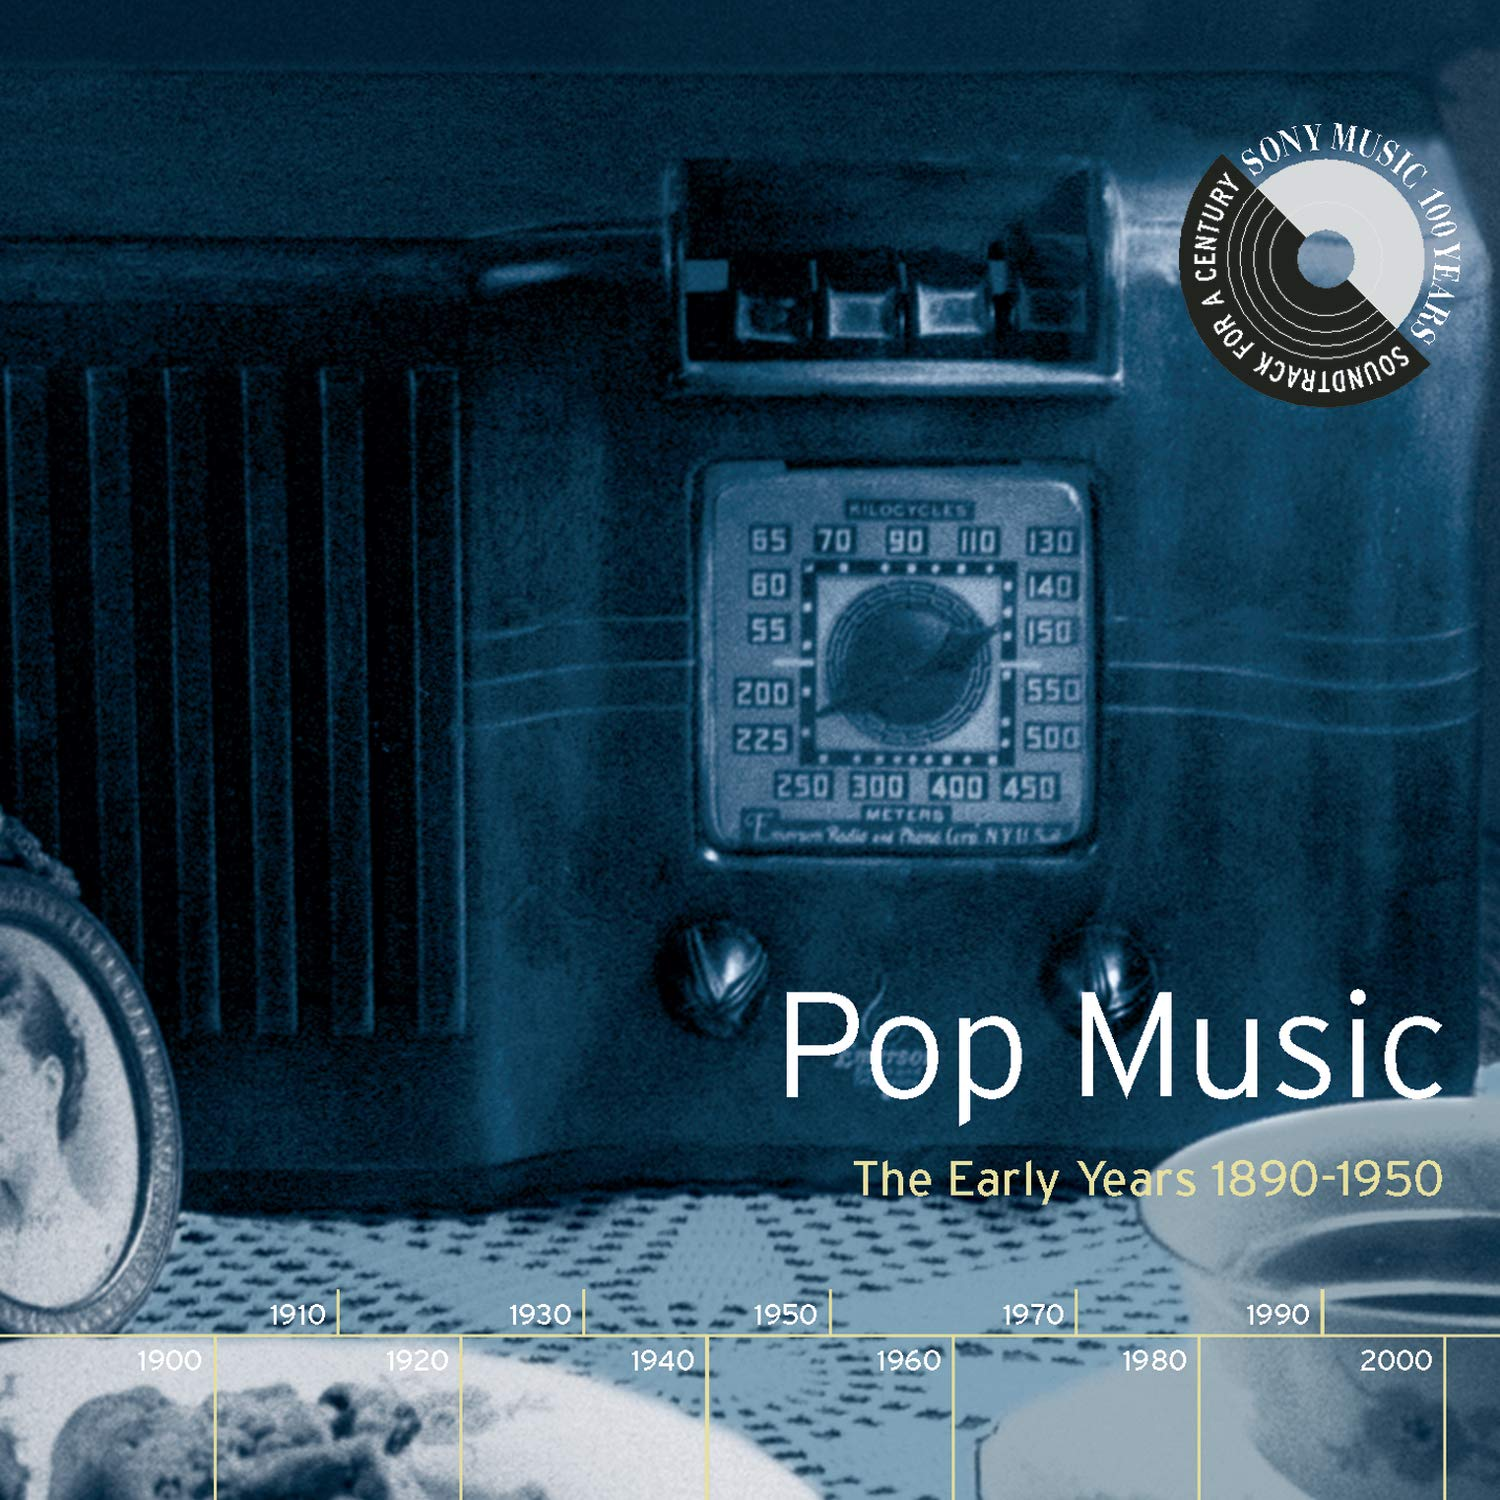 Pop Music: The Early Years 1890-1950 by Sony Legacy